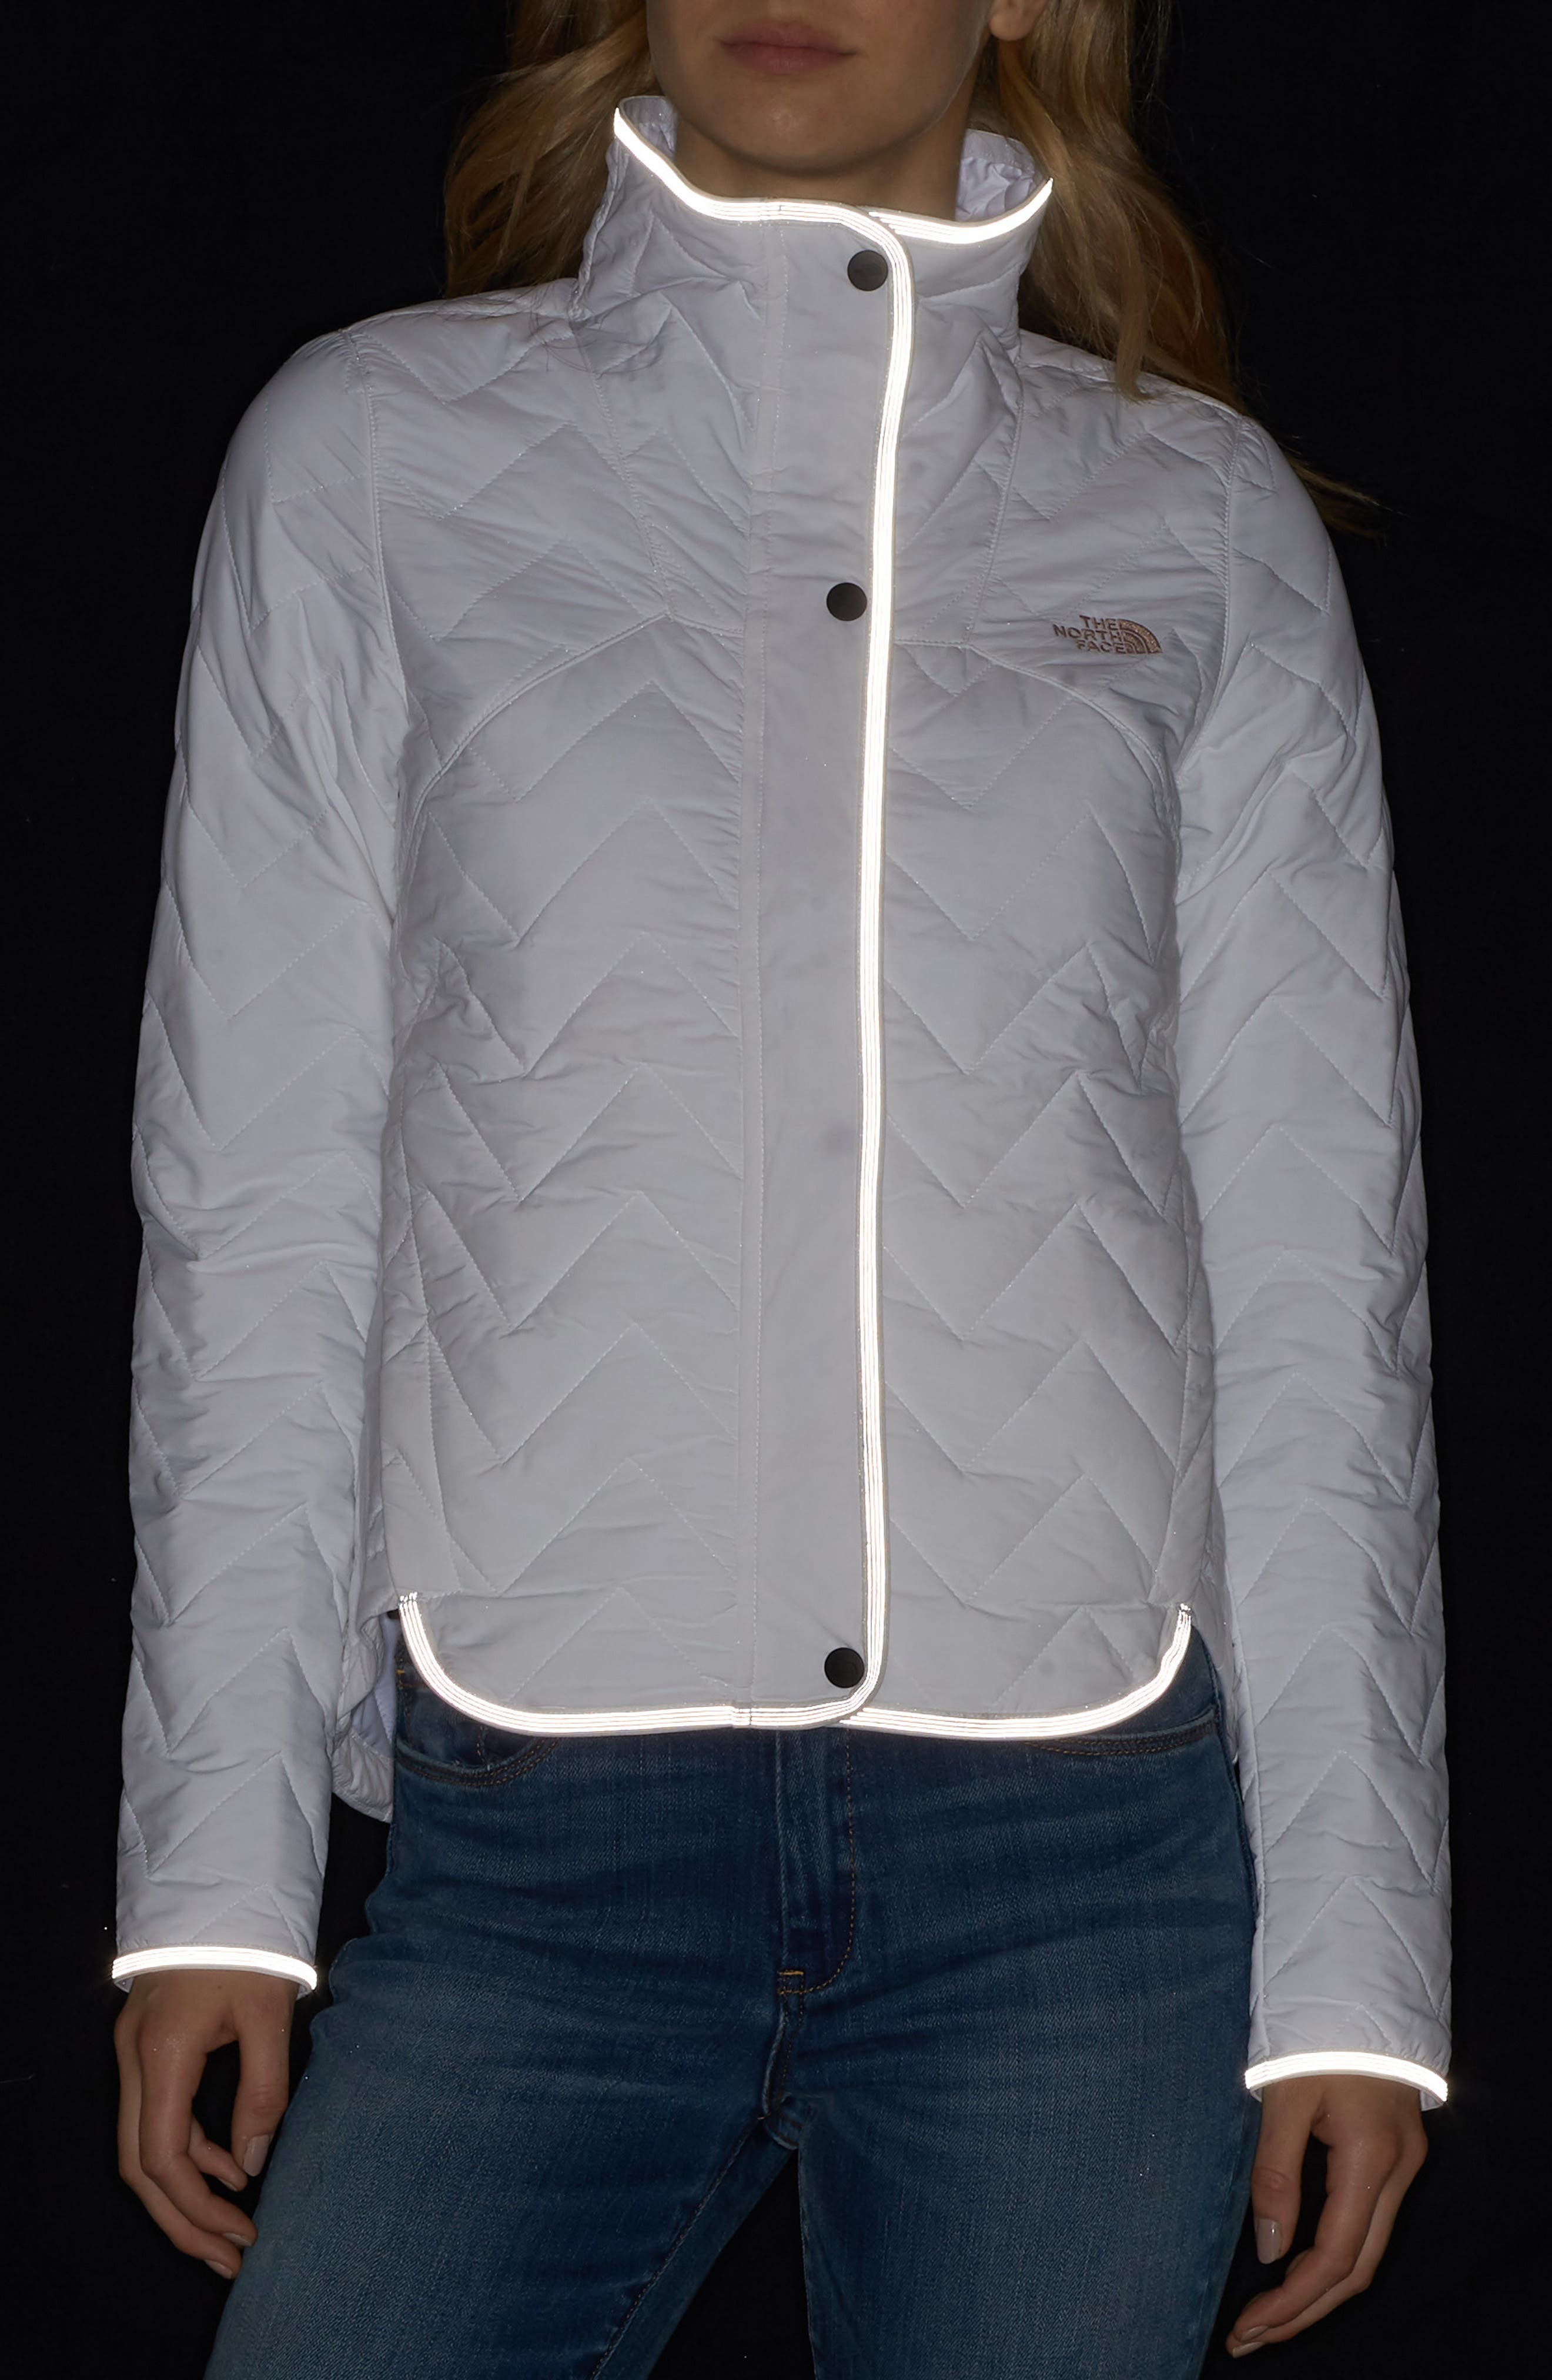 Westborough Insulated Jacket,                             Alternate thumbnail 4, color,                             BRIGHT WHITE